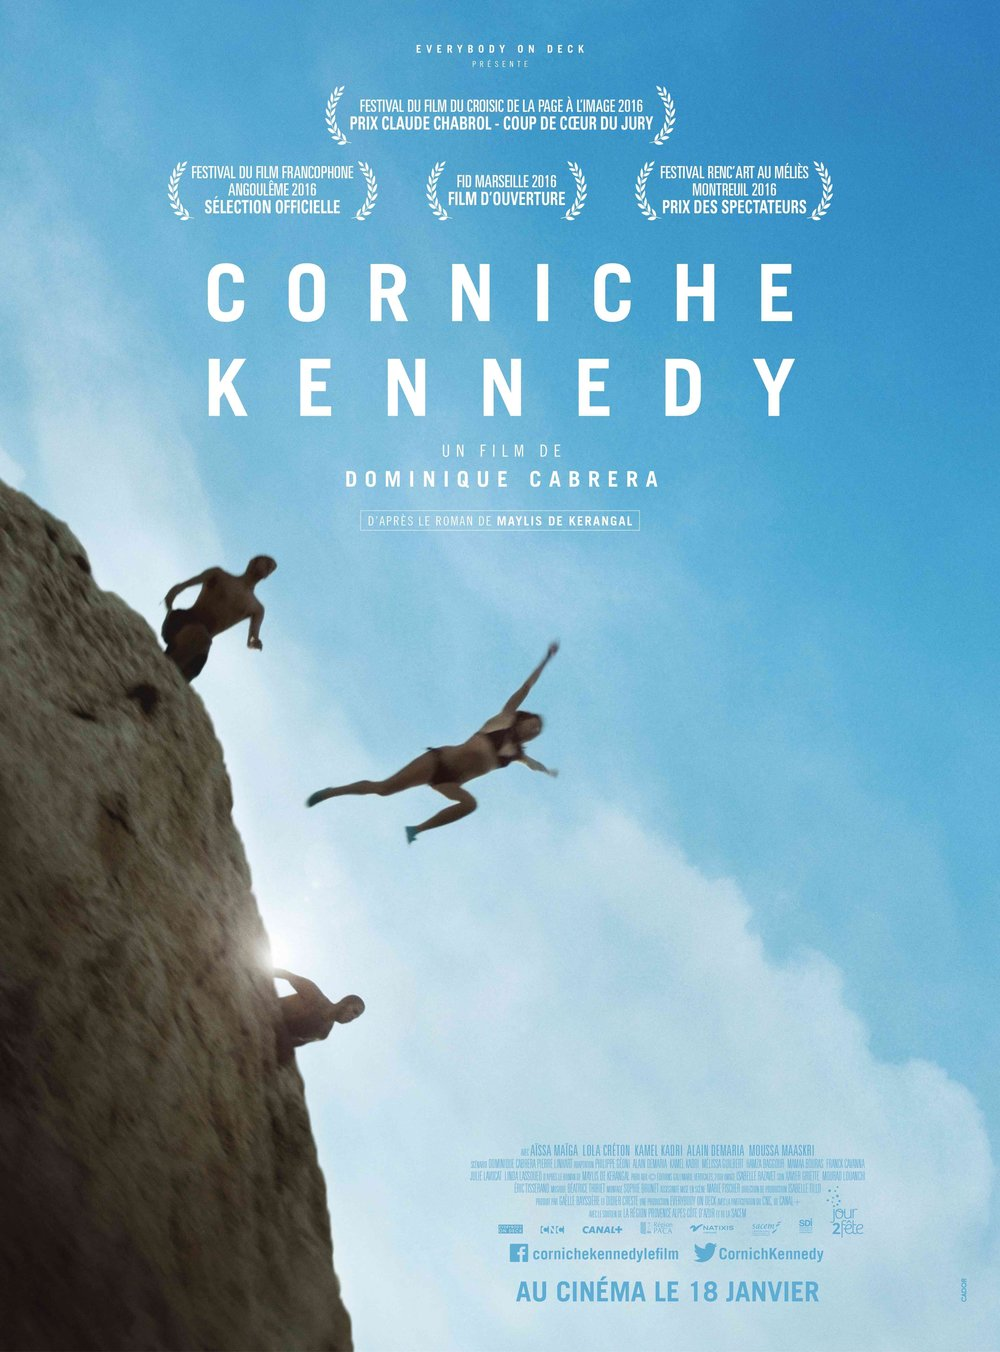 corniche-kennedy-yes-way-marseille-backstory